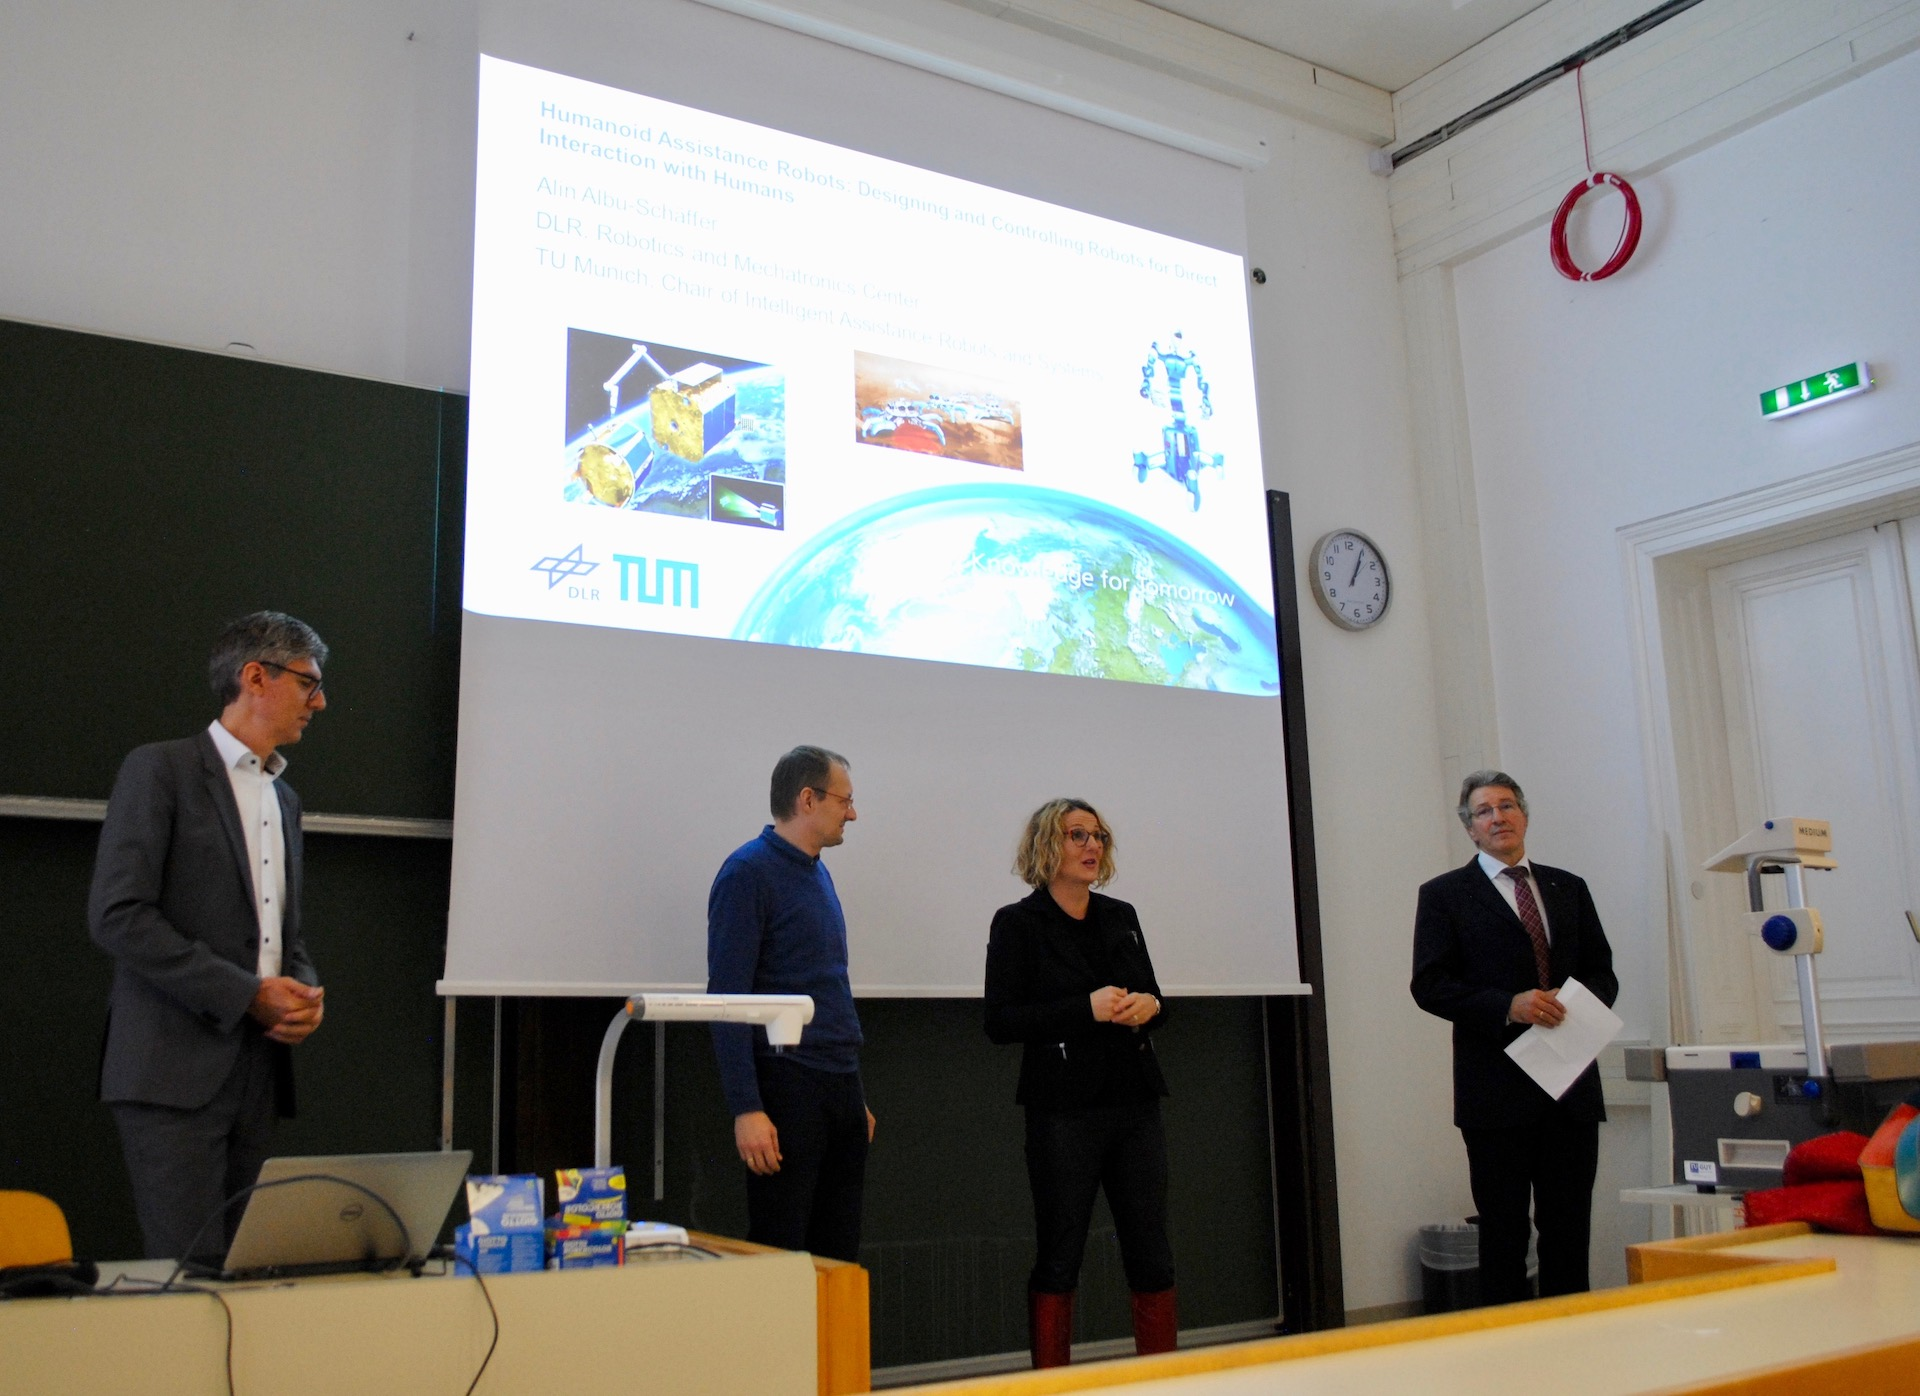 Opening of the Doctoral College and seminar talk by Prof. Alin Albu-Schäffer